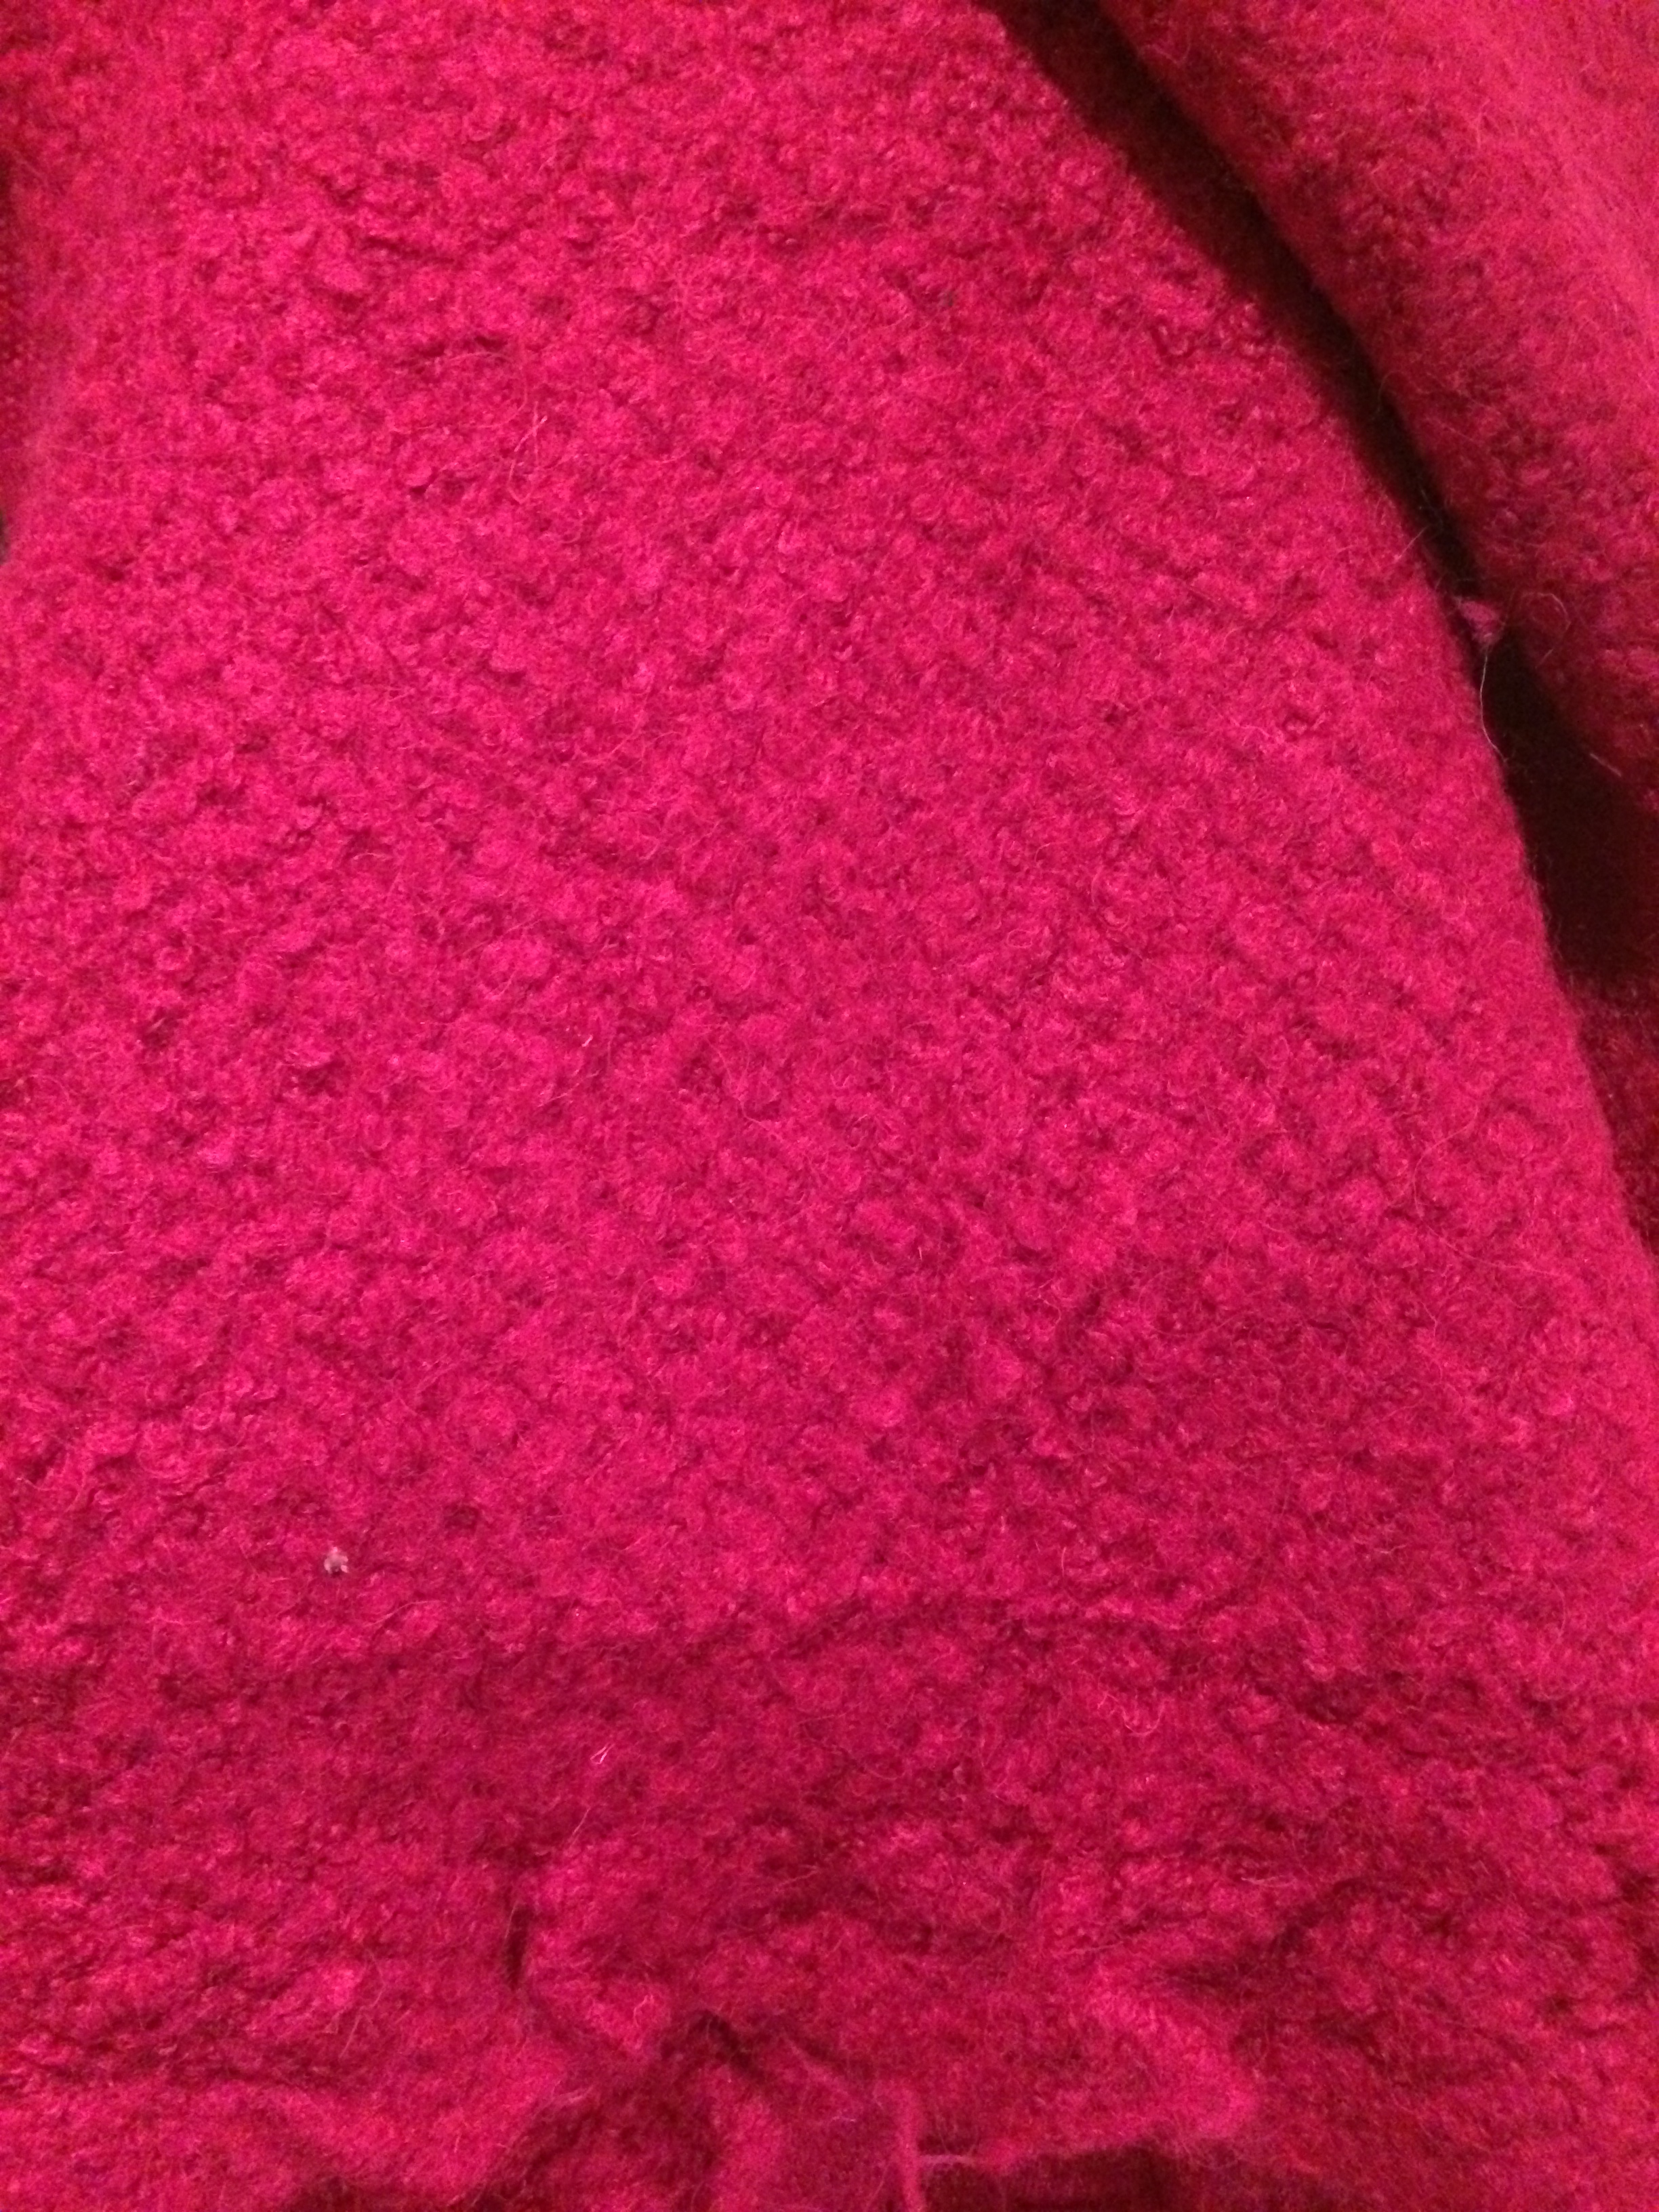 Pink boucle remnant